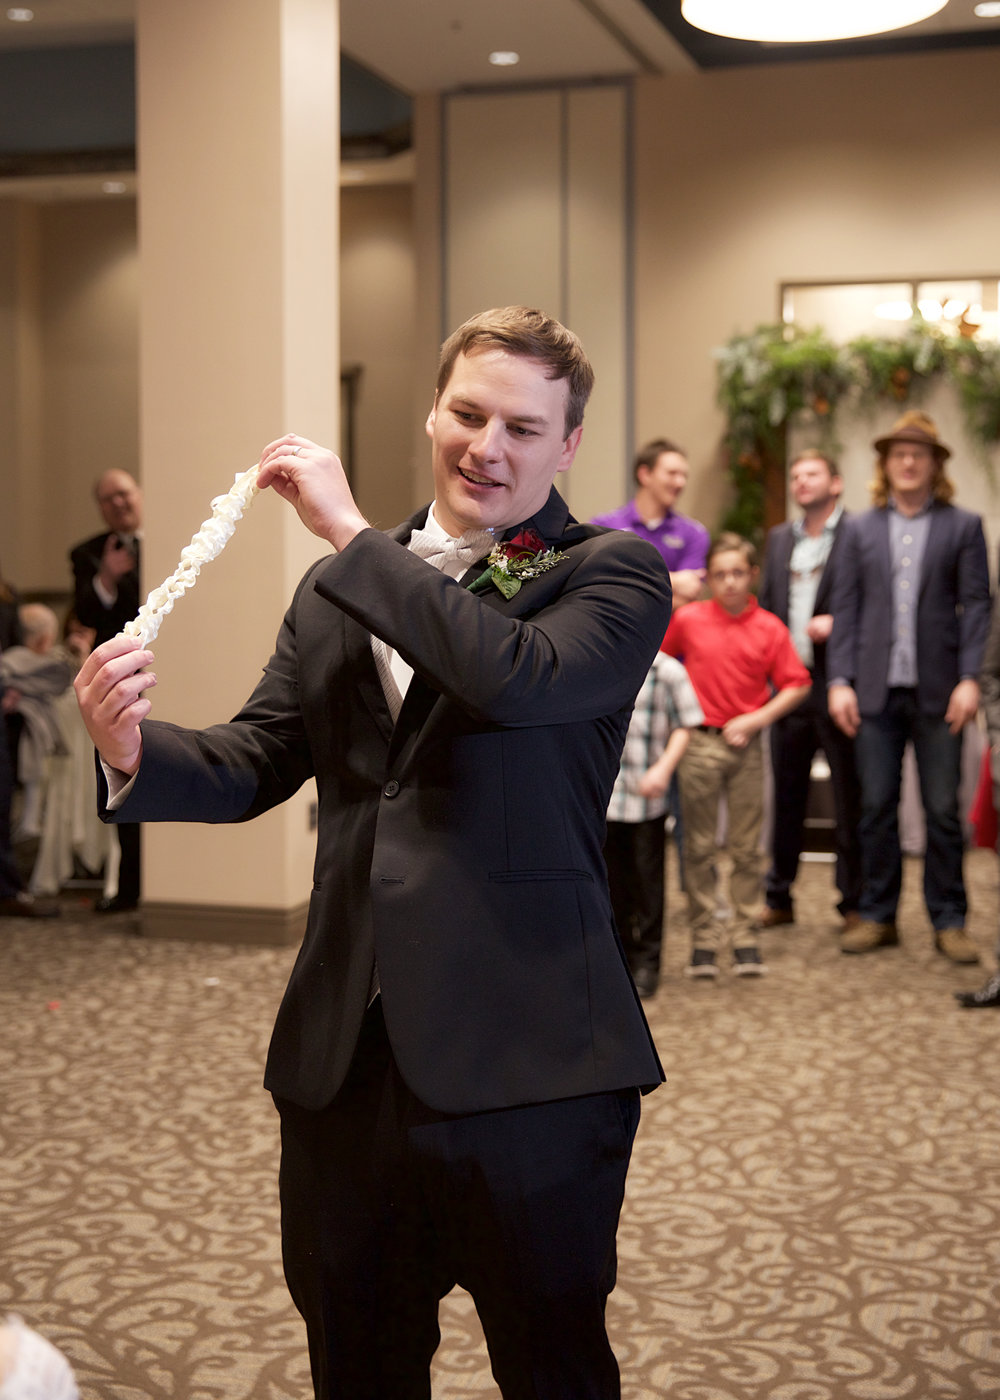 38-throw-the-garter.jpg